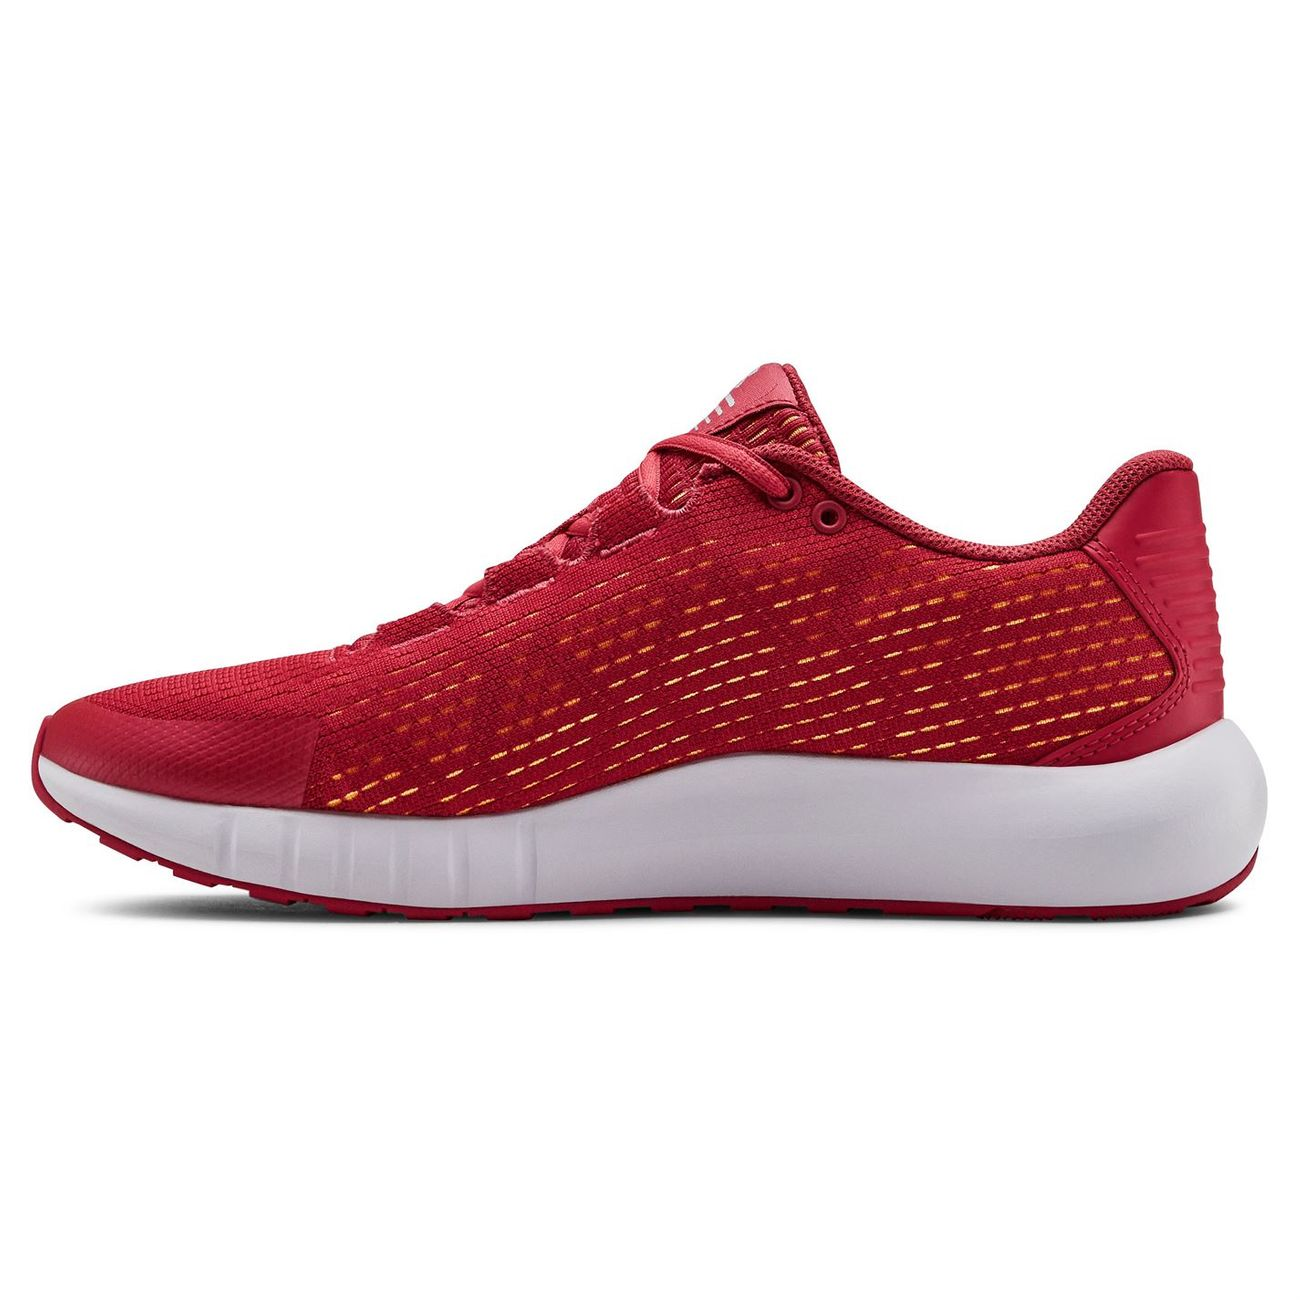 De Micro G Baskets Armour Running Femme Under Pursuit j4q3c5ARL